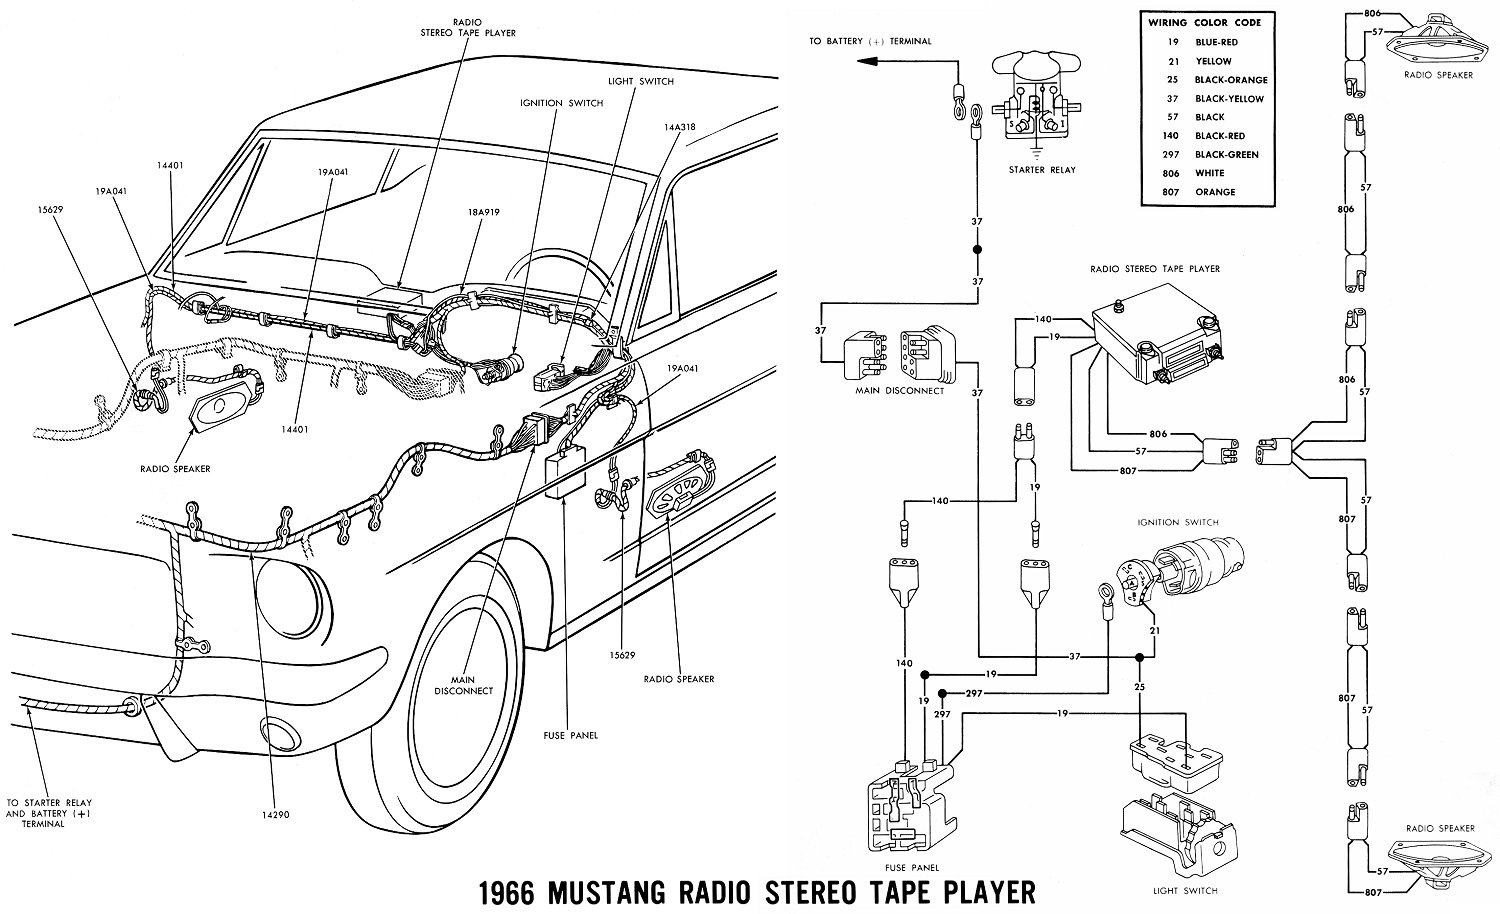 ... 66 accessories schematic · 66 stereo/tape player details · 66 power  convertible ...